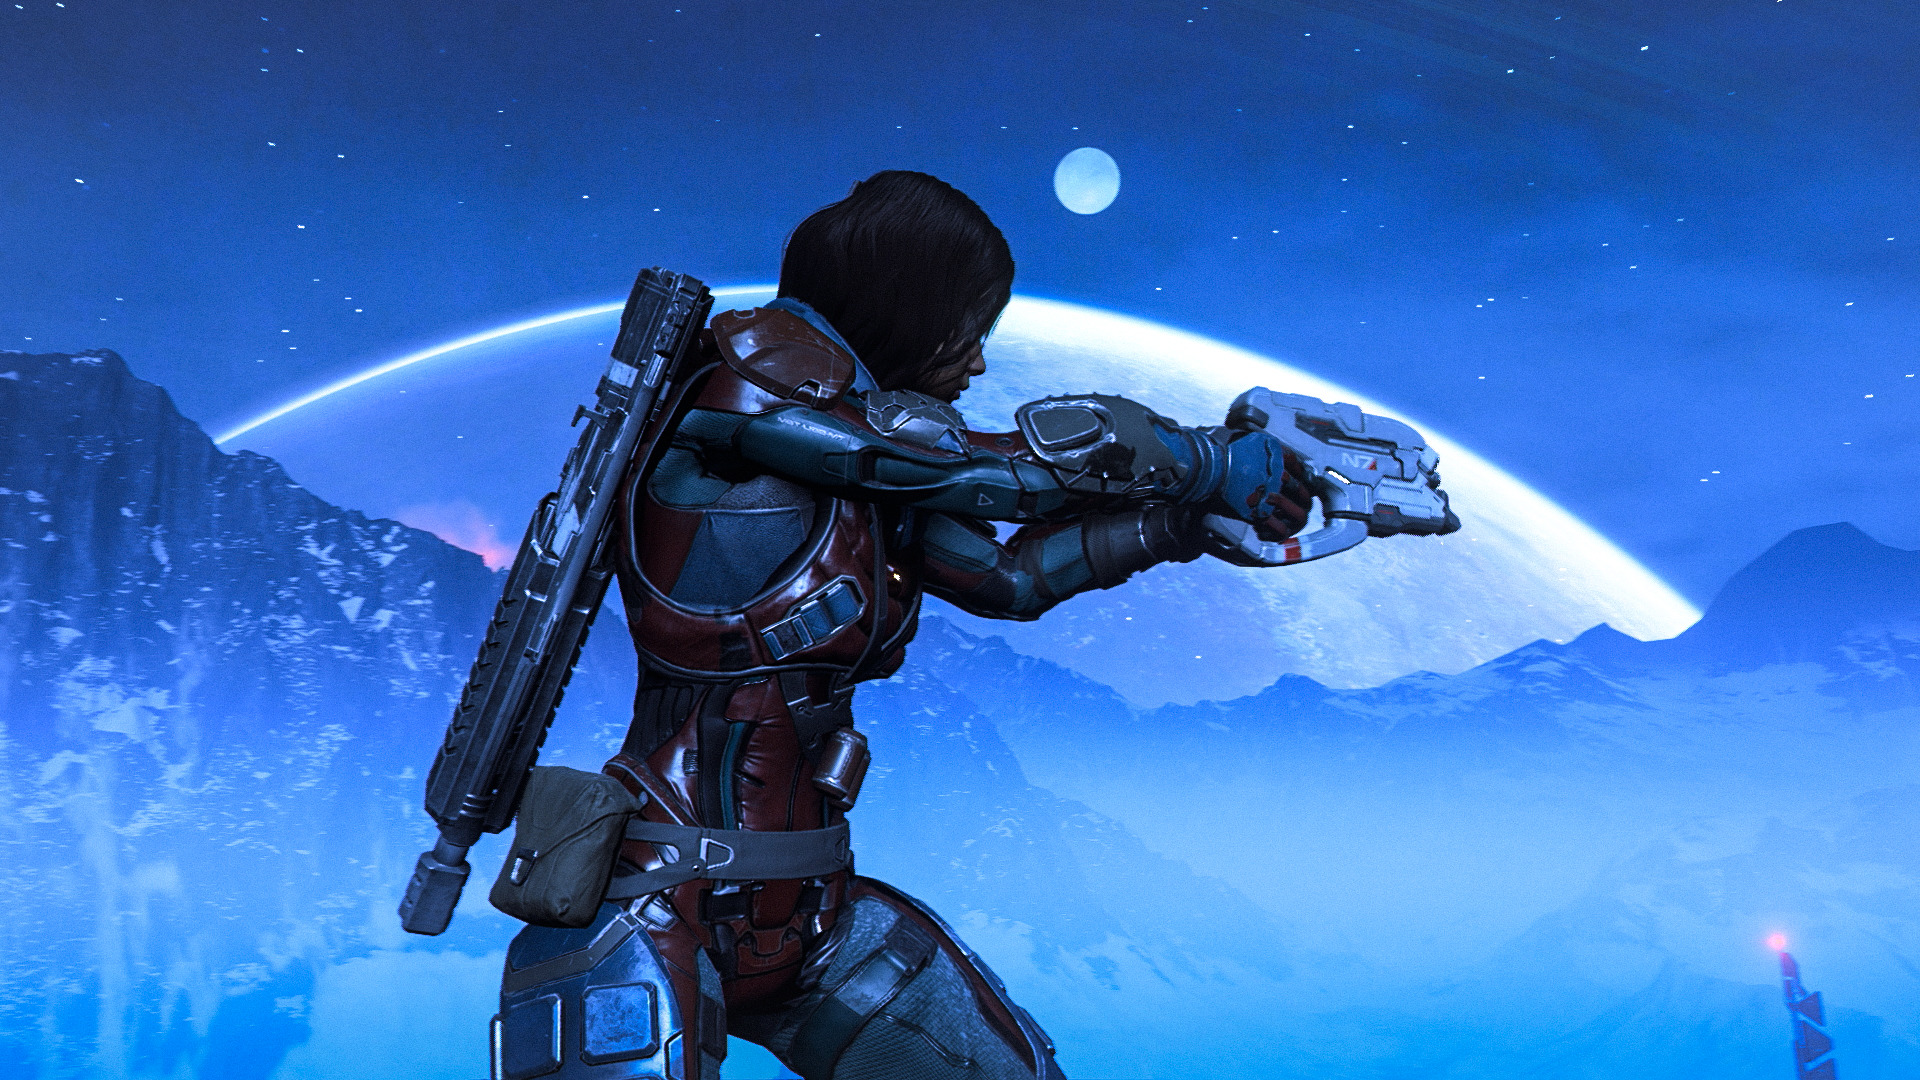 Original Developers to Make a Comeback for the New Mass Effect Game